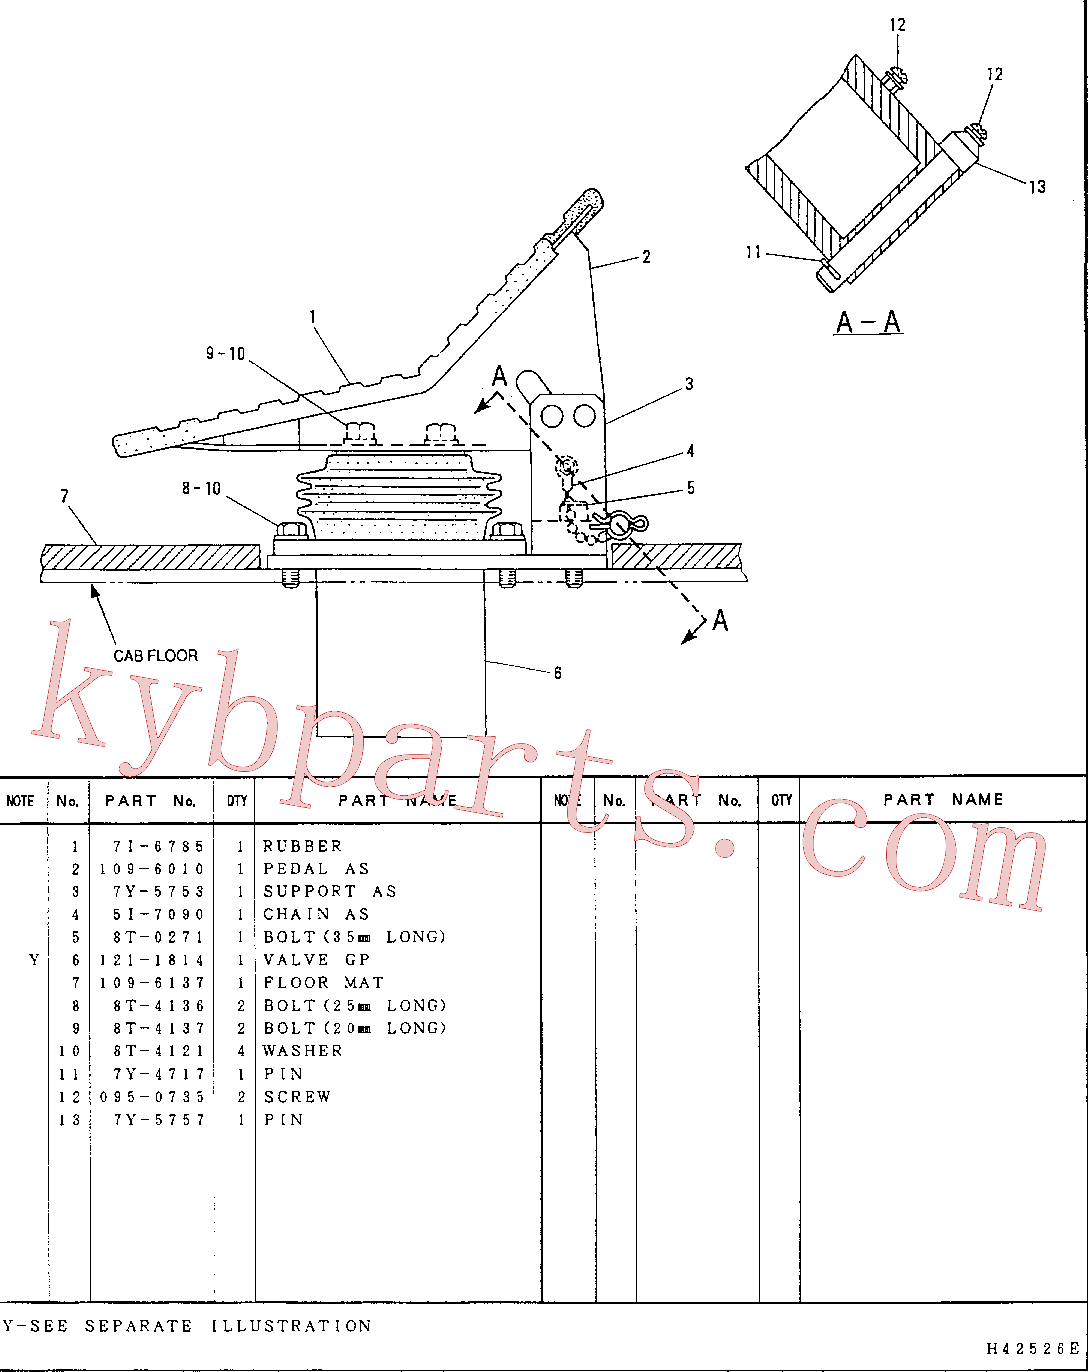 CAT 109-6137 for 315-A L Excavator(EXC) hydraulic system 110-5645 Assembly